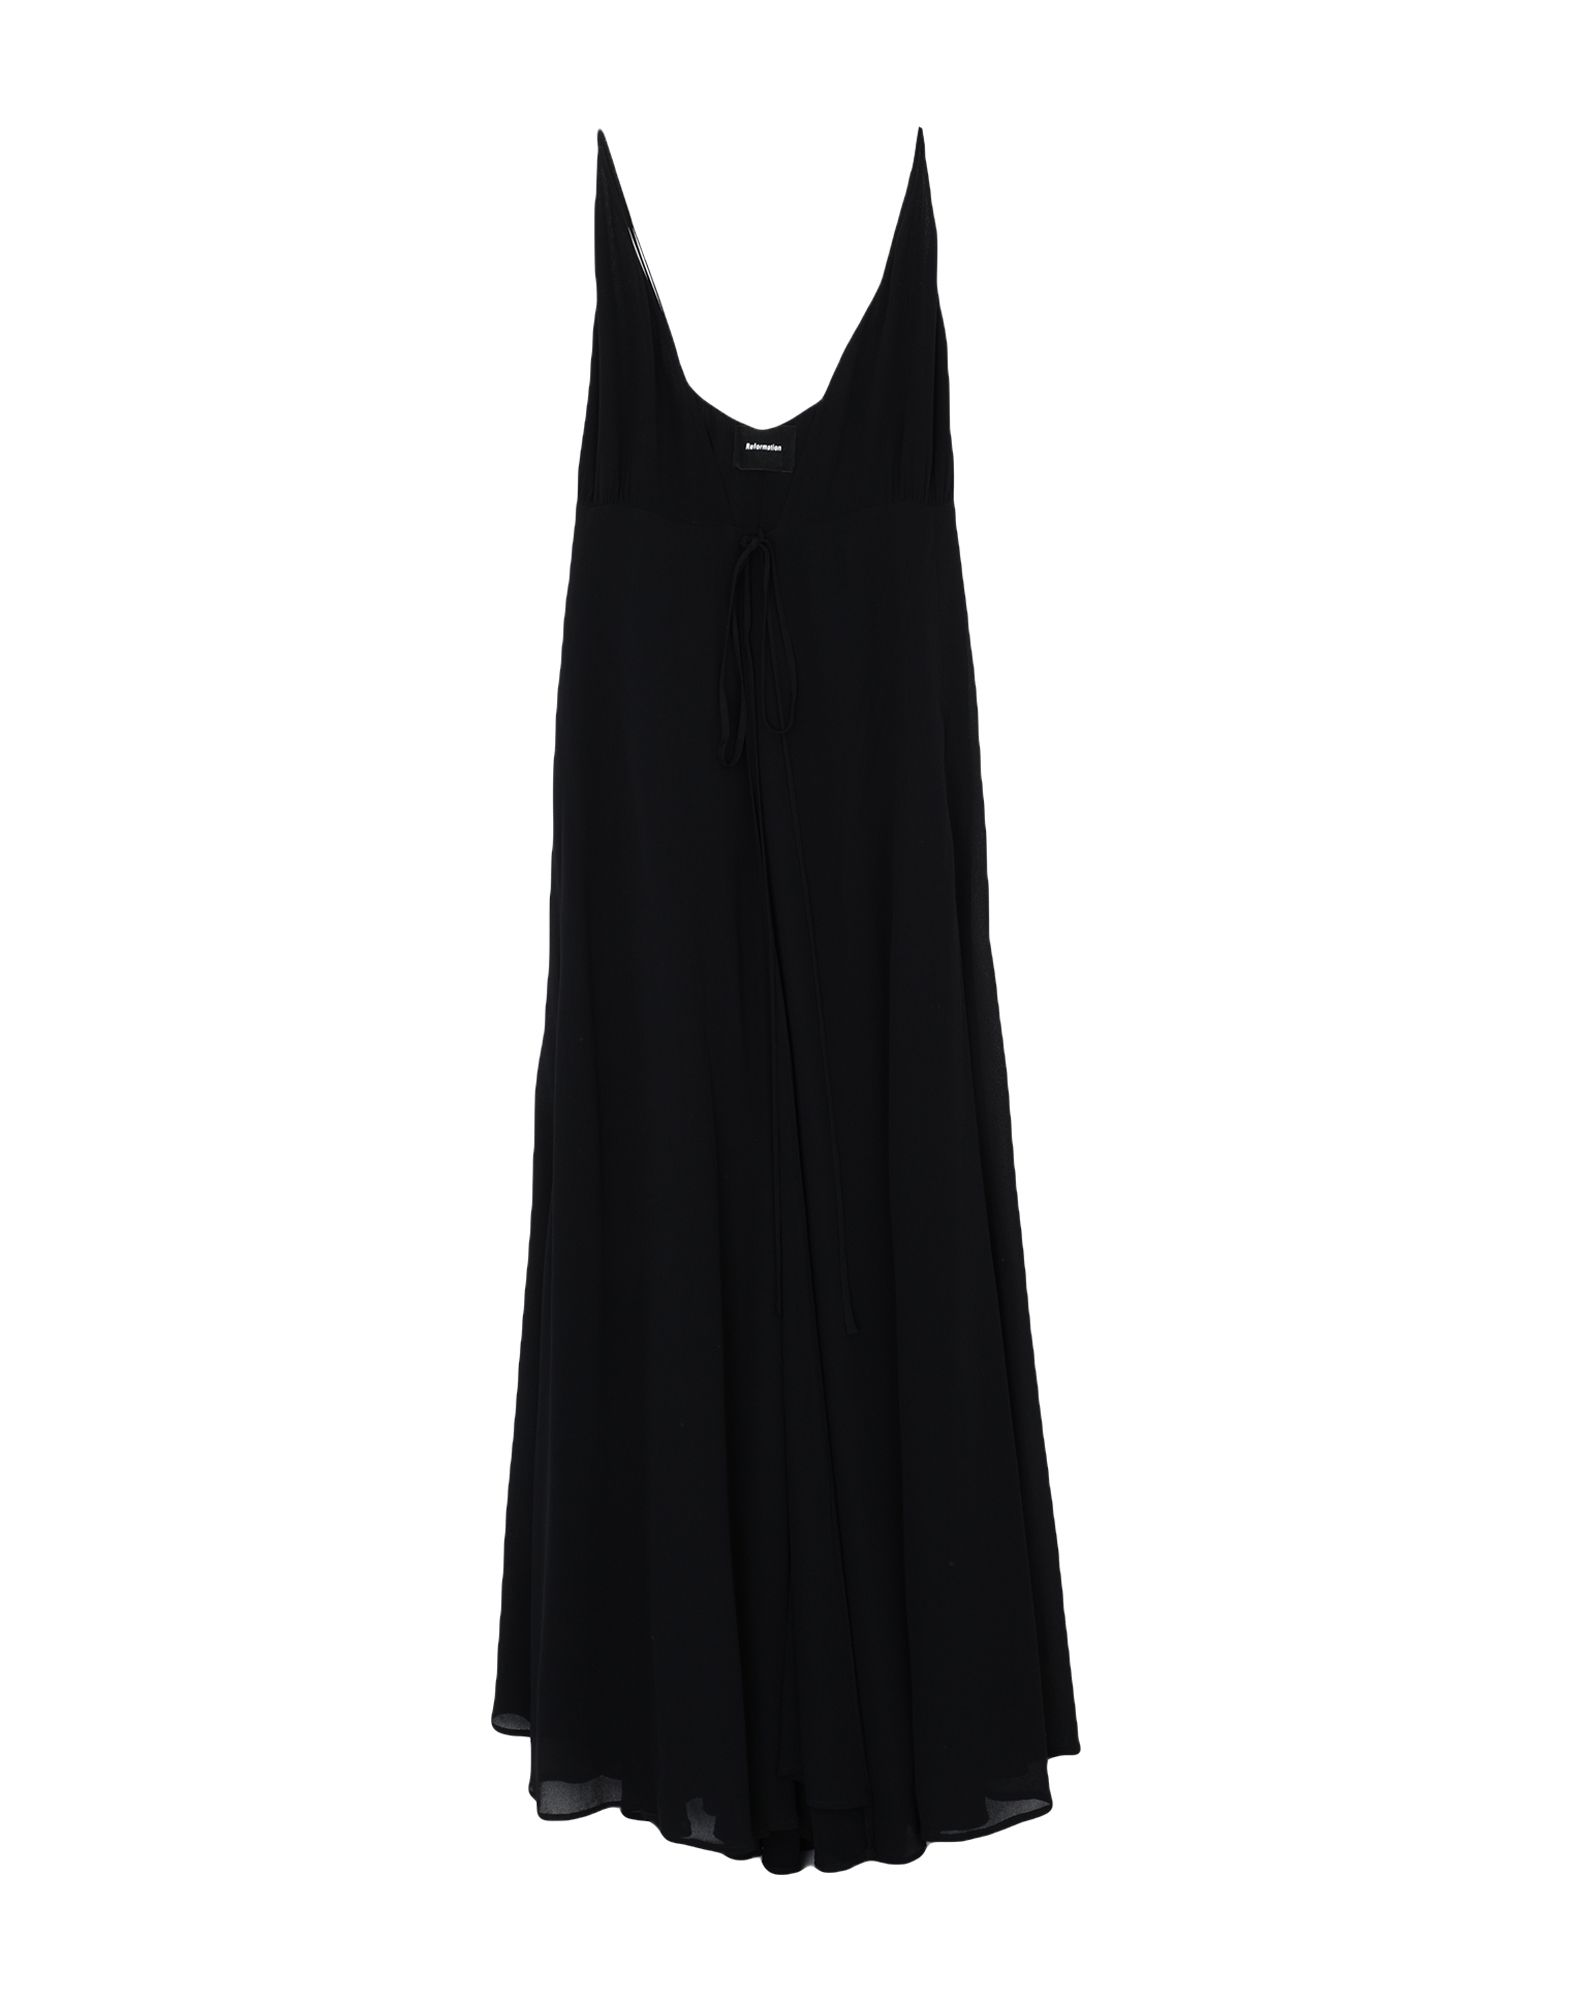 REFORMATION Long dresses. crepe, no appliqués, basic solid color, deep neckline, sleeveless, self-tie wrap closure, fully lined. 100% Viscose